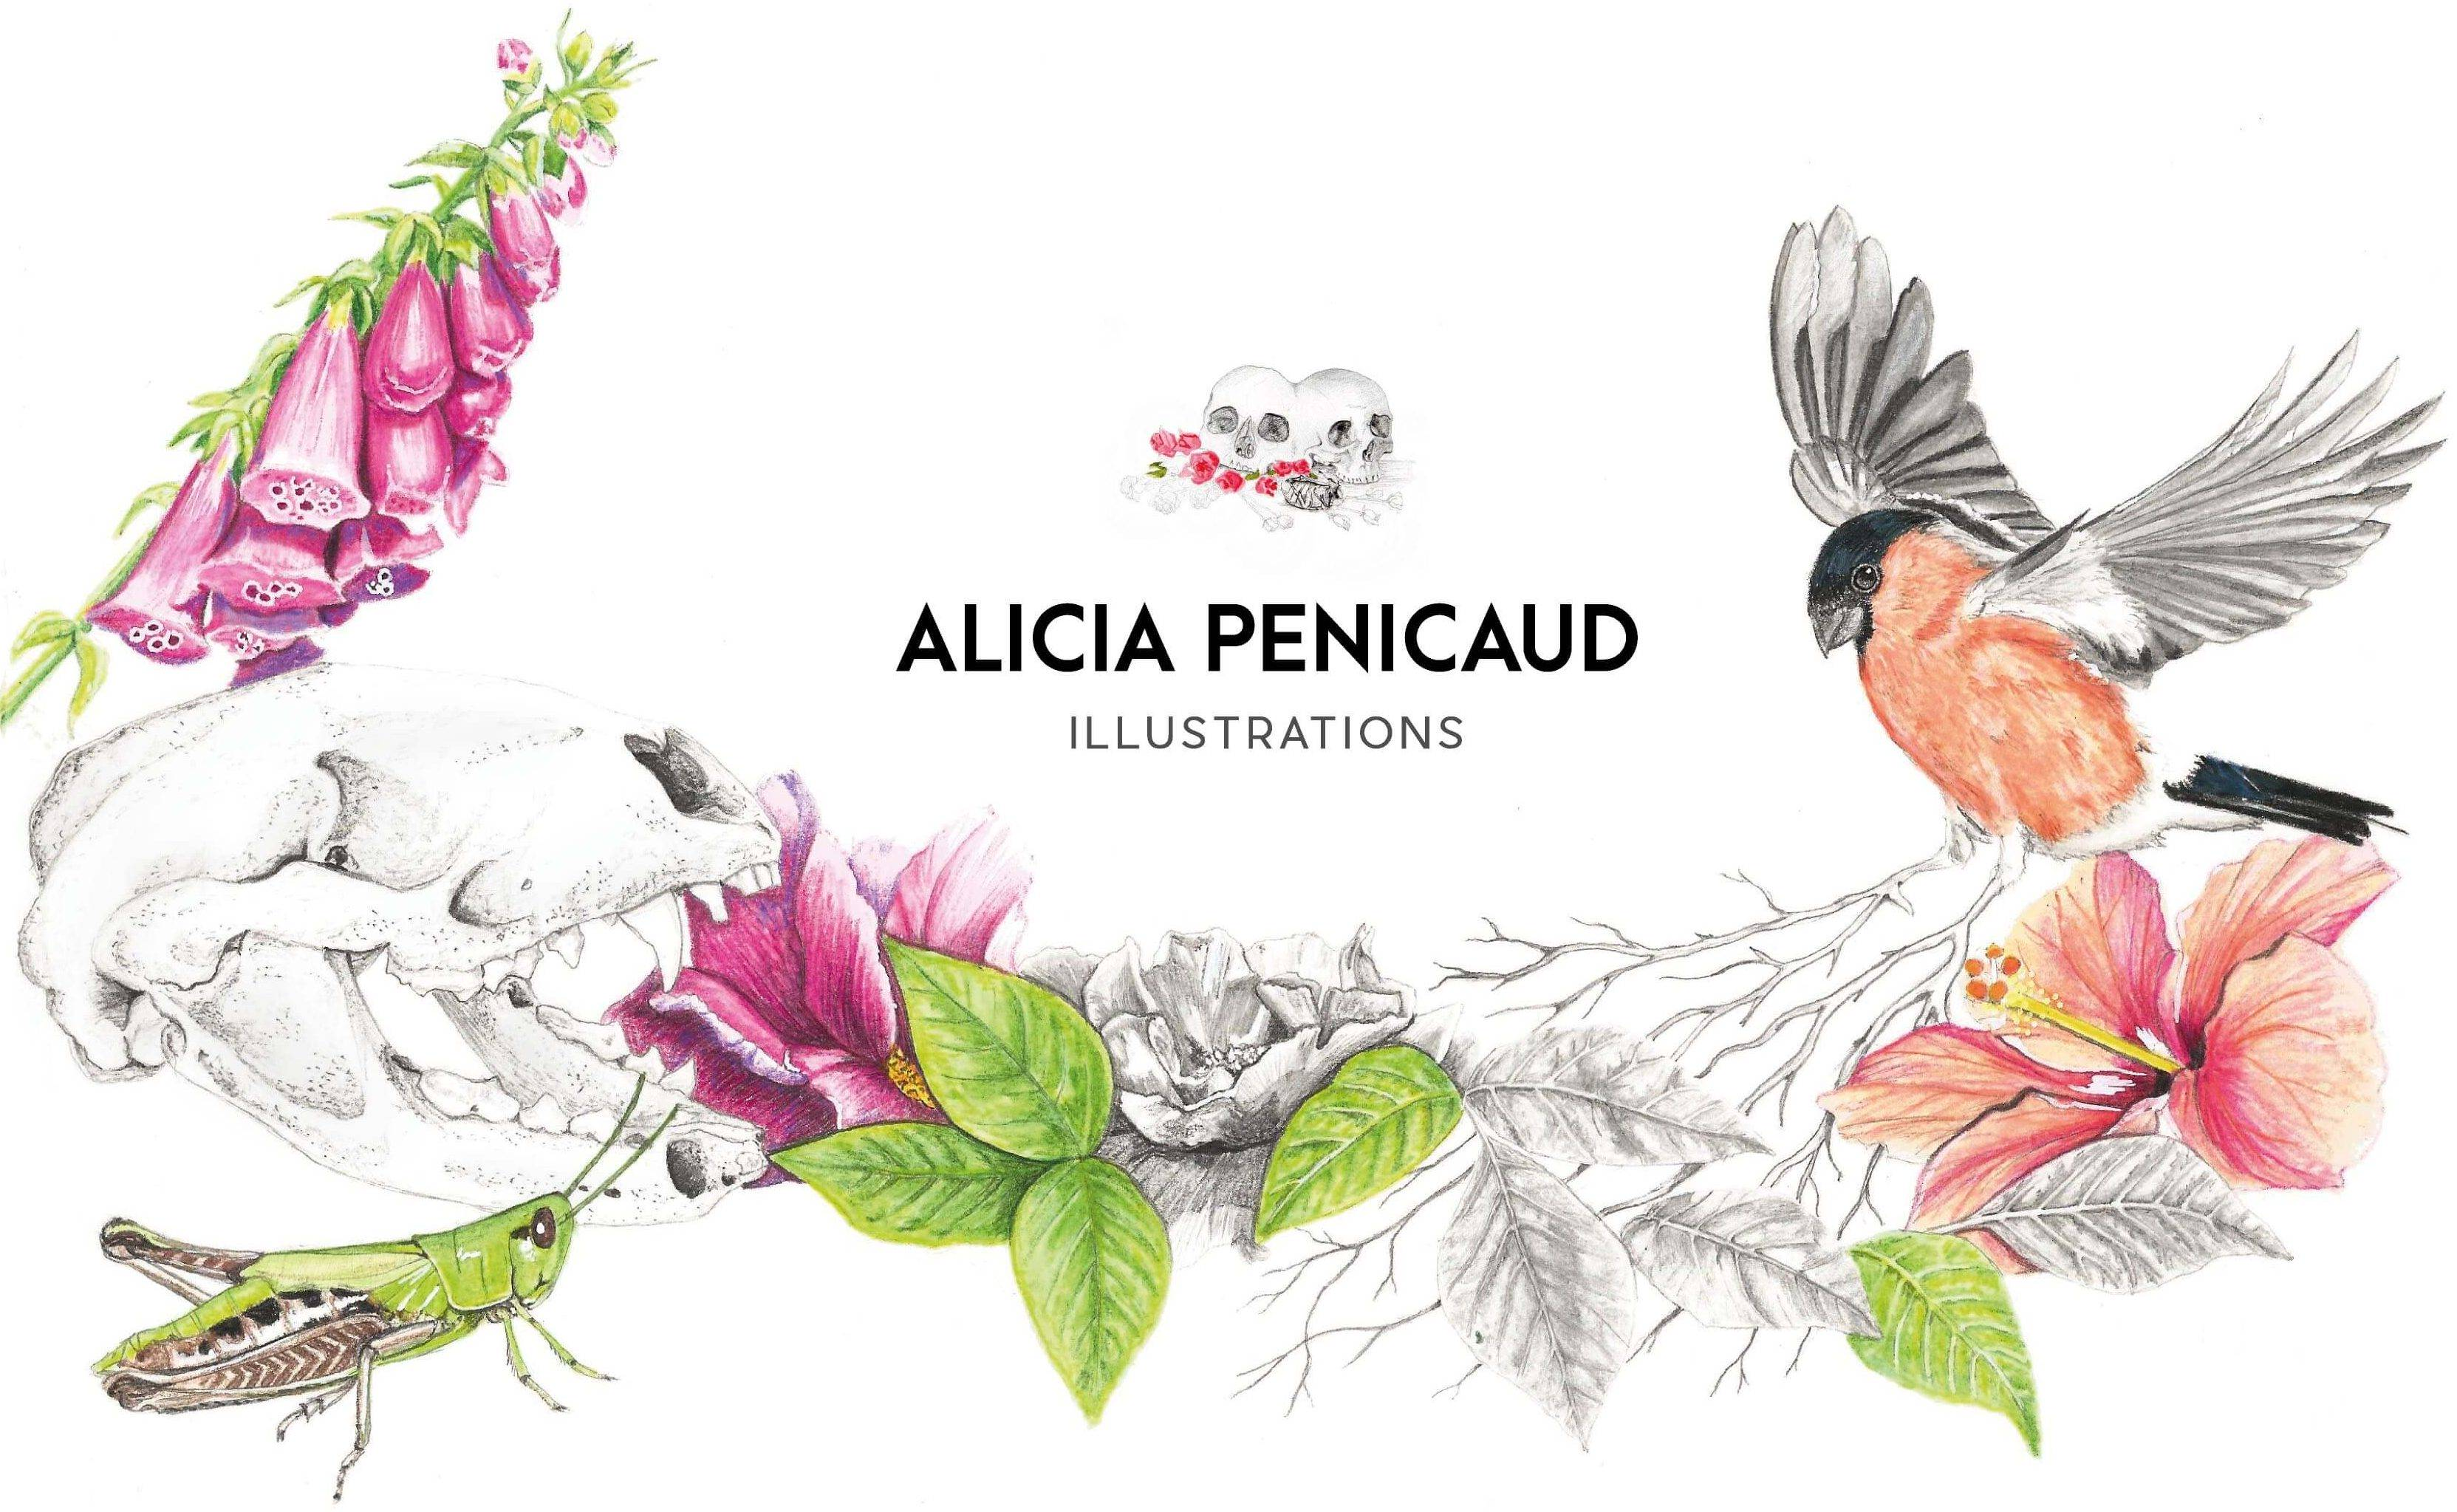 Alicia Penicaud Illustrations